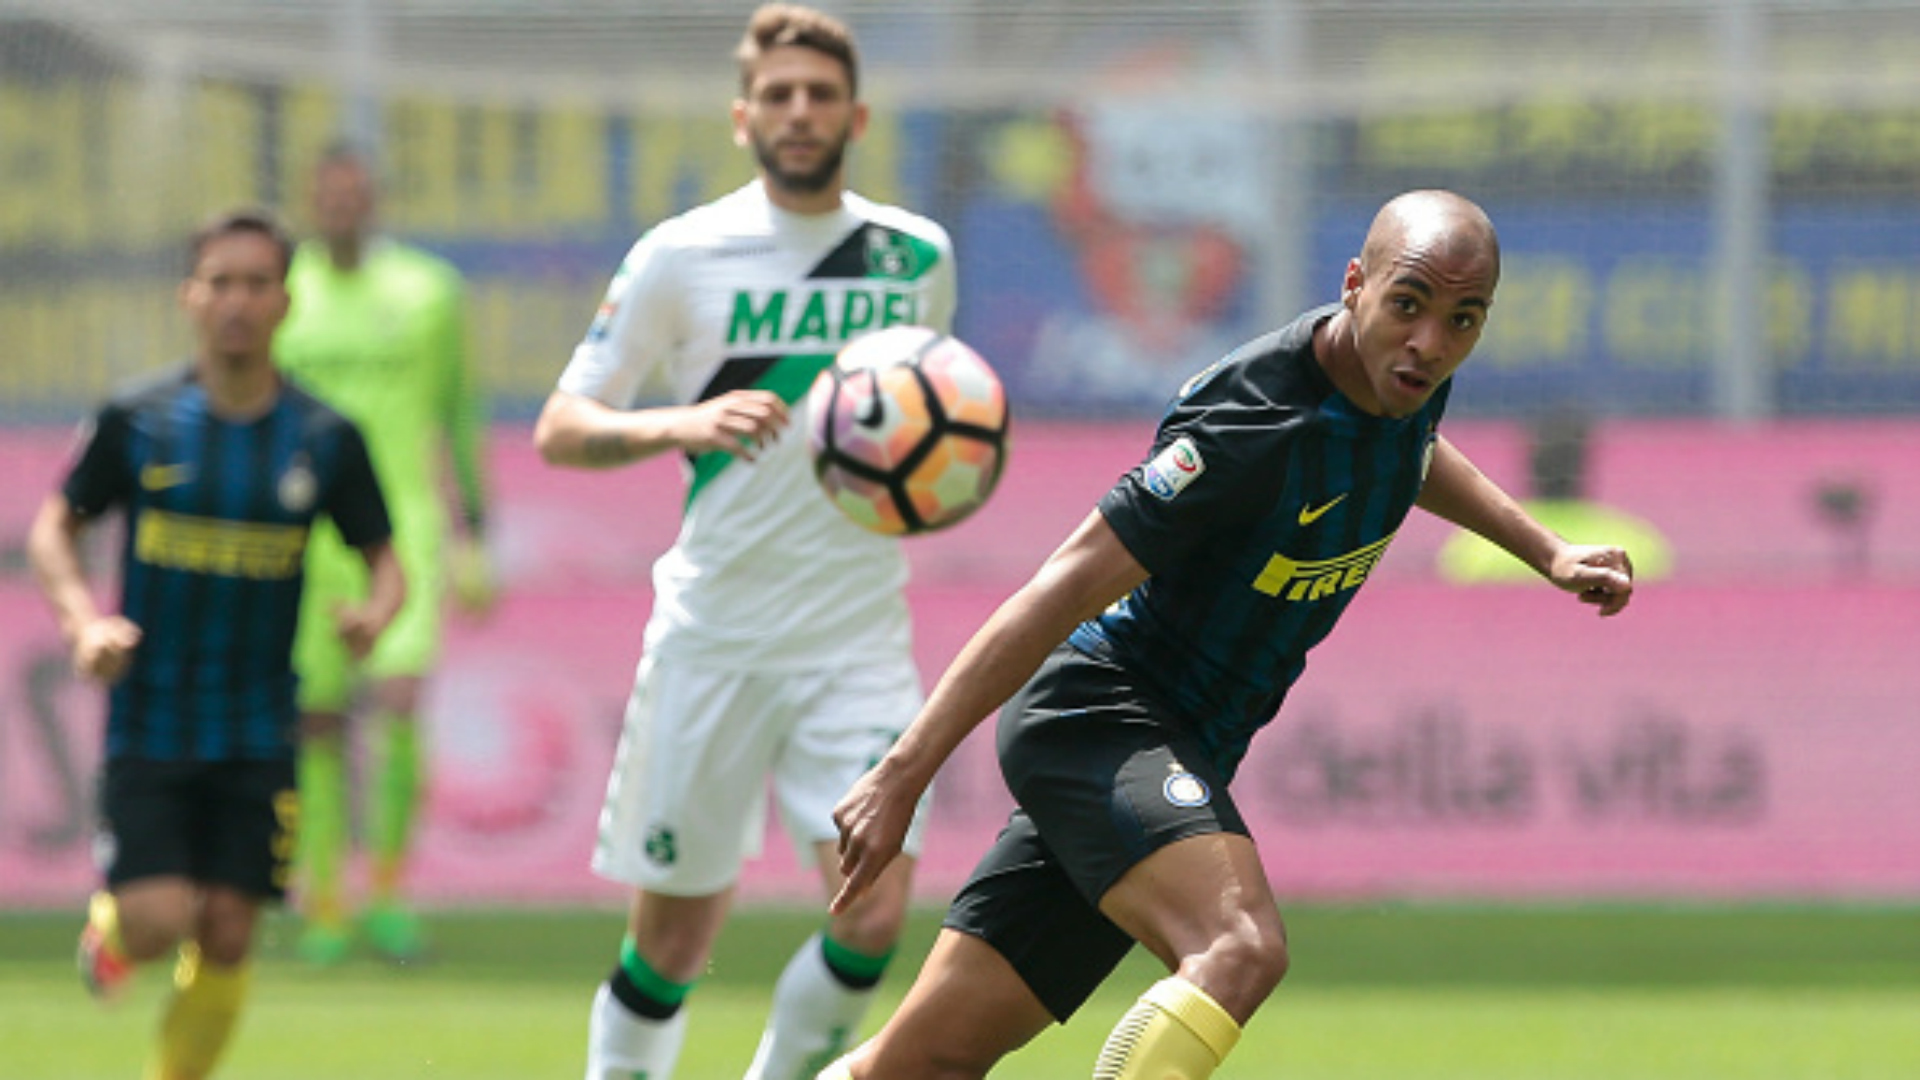 INTER SASSUOLO streaming gratis: vedere partita in diretta video rojadirecta